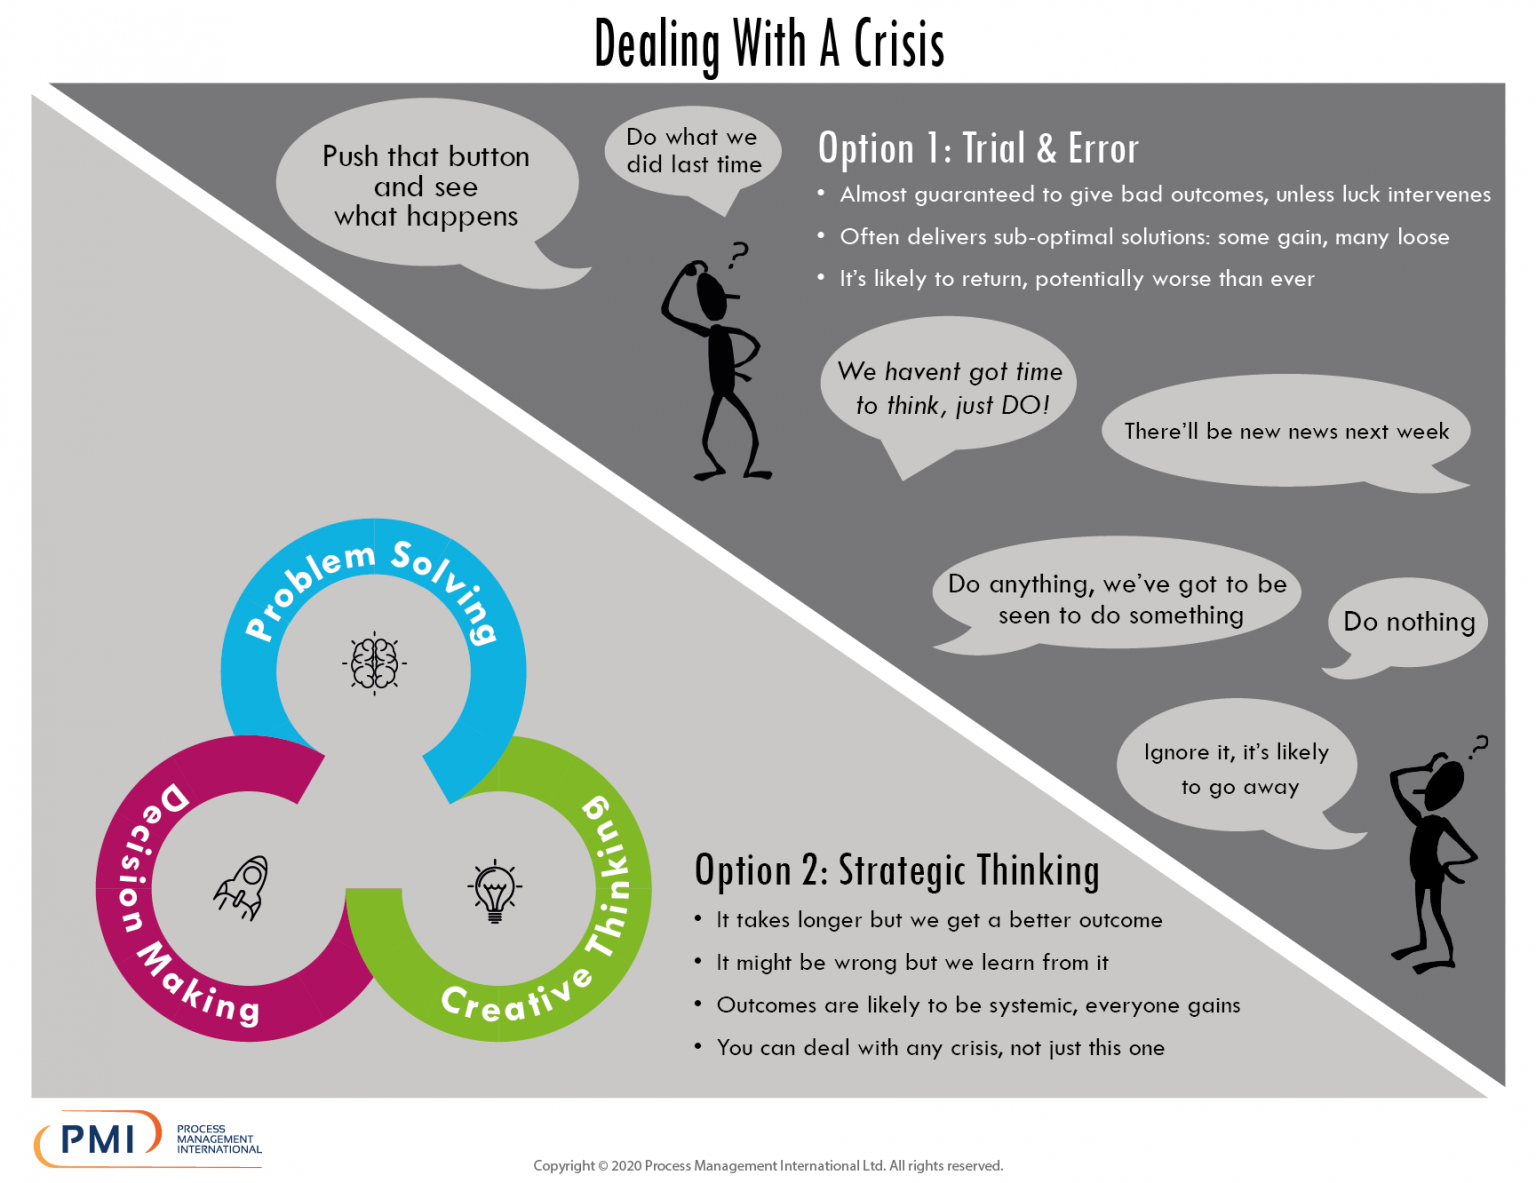 Dealing With A Crisis Infographic